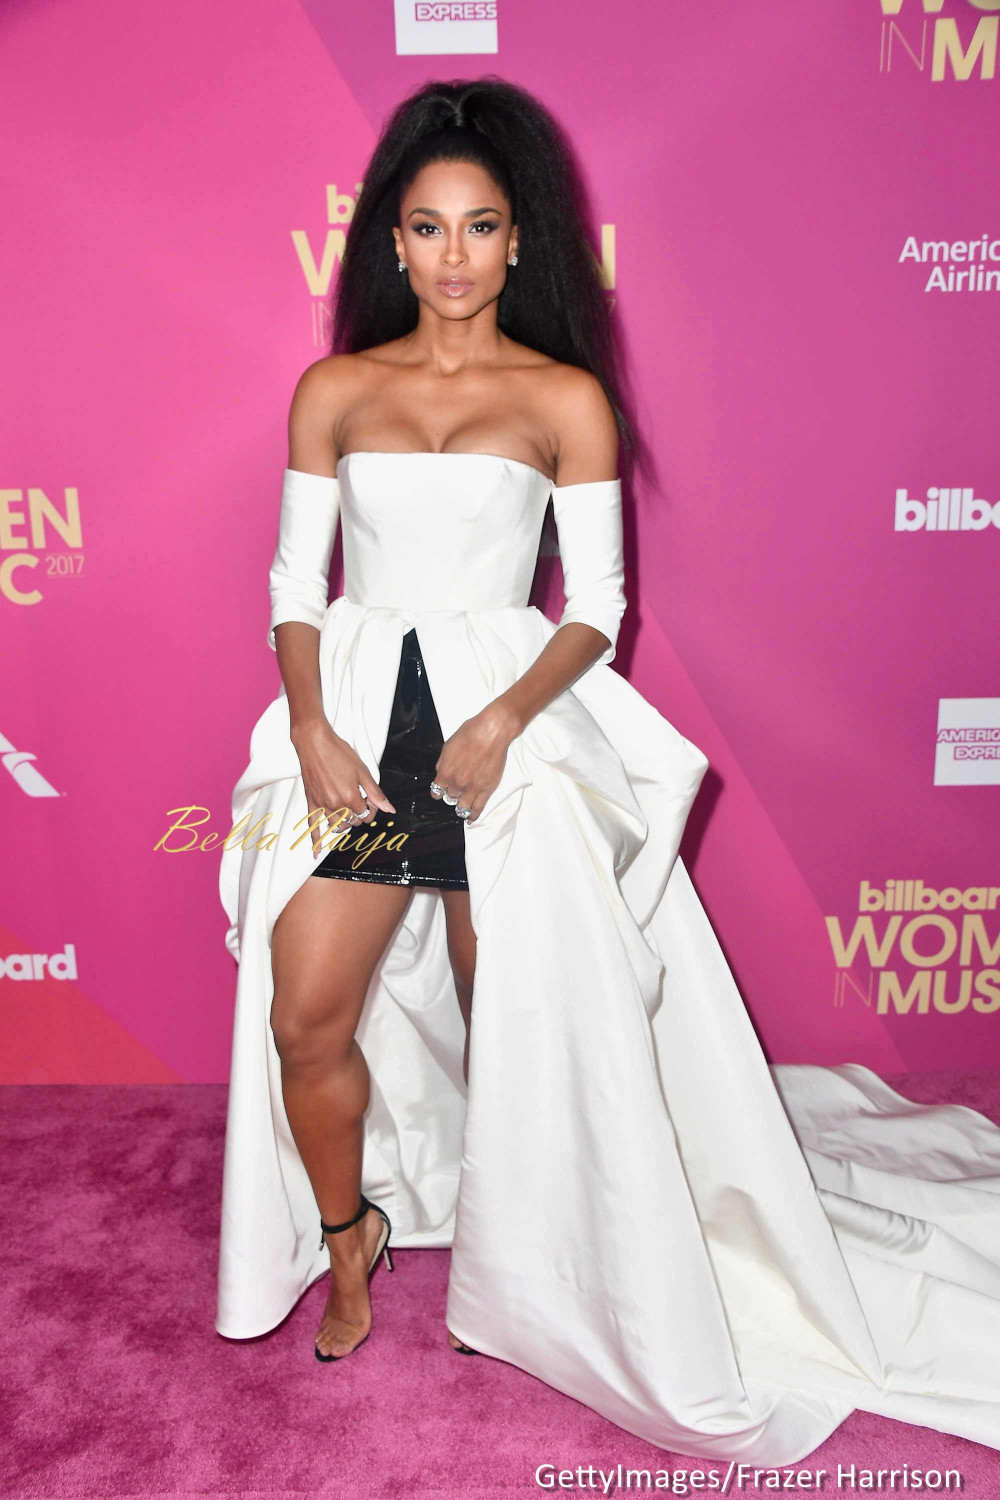 Ciara, Kelly Rowland, Mary J Blige, Solange, Camilla Cabello attend 2017 Billboard Women in Music Awards